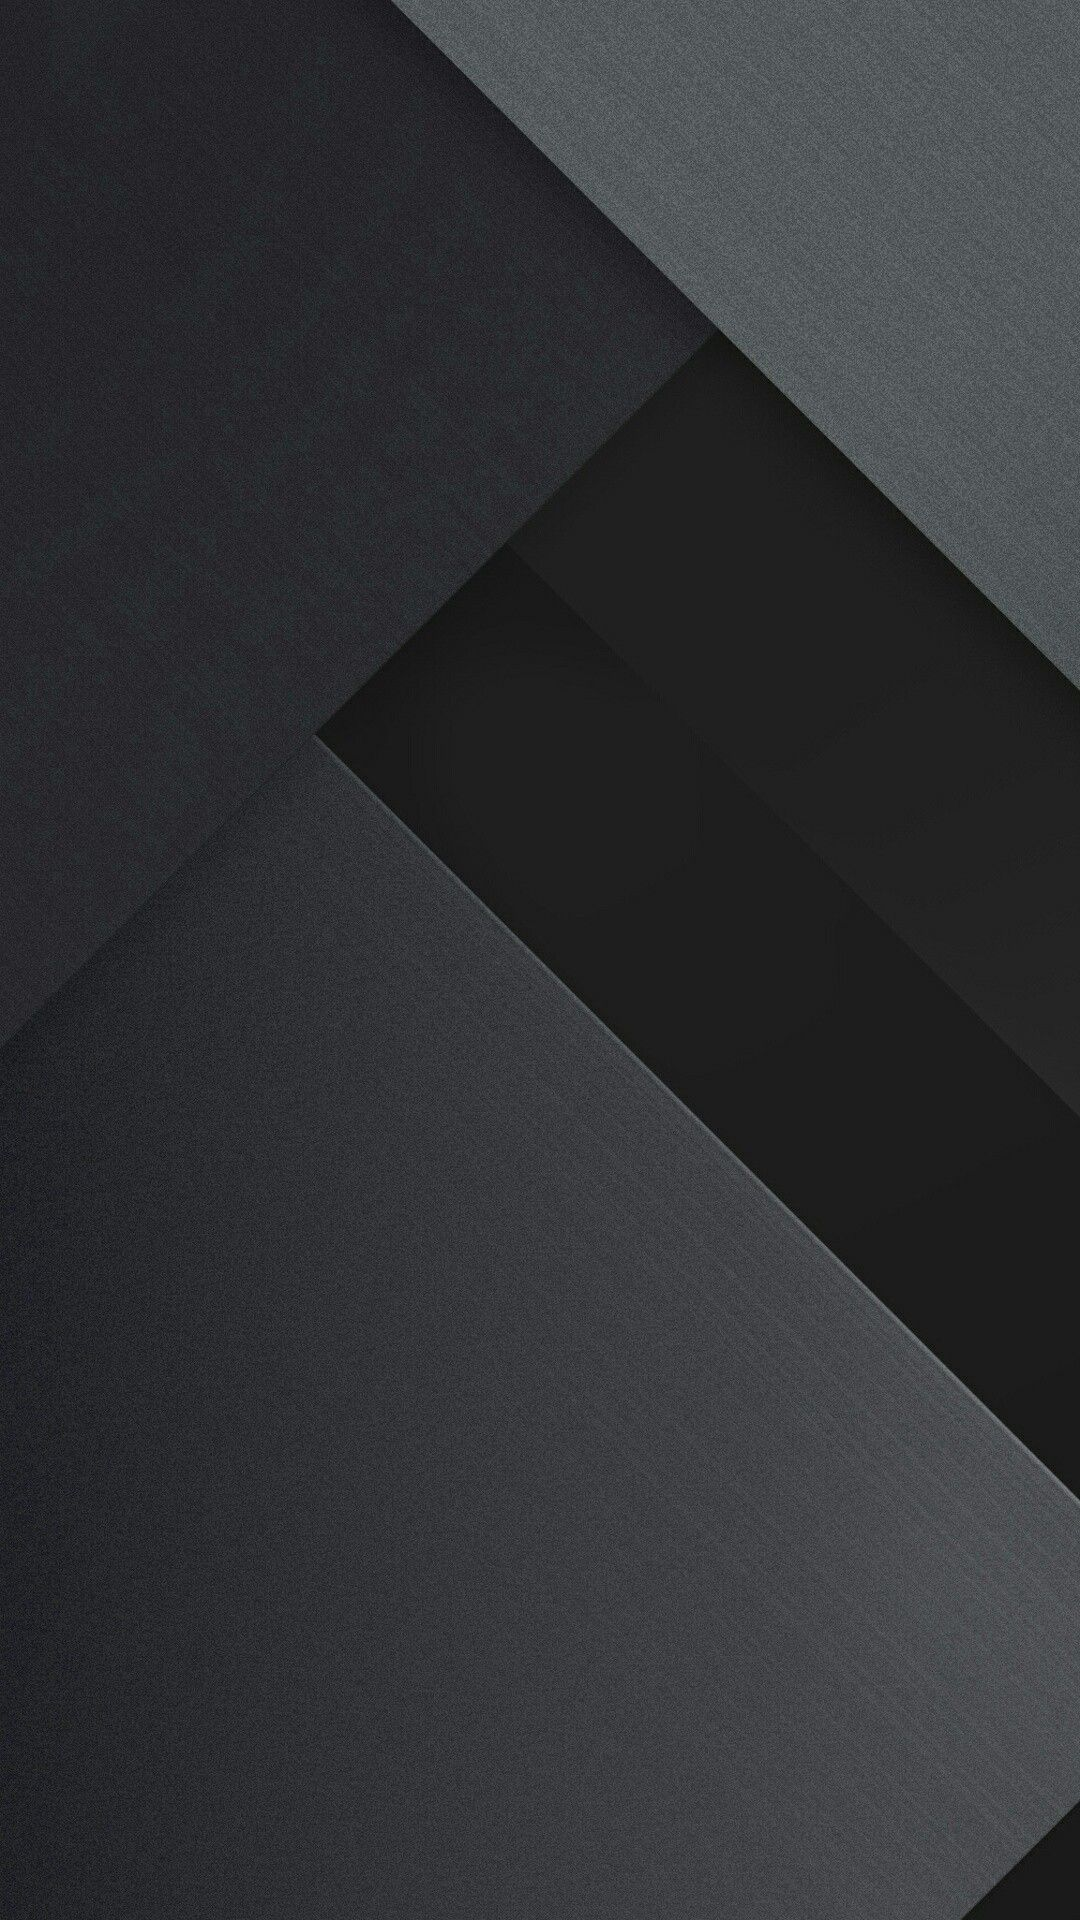 Grey Scale Abstract Wallpaper Abstract And Geometric Wallpapers